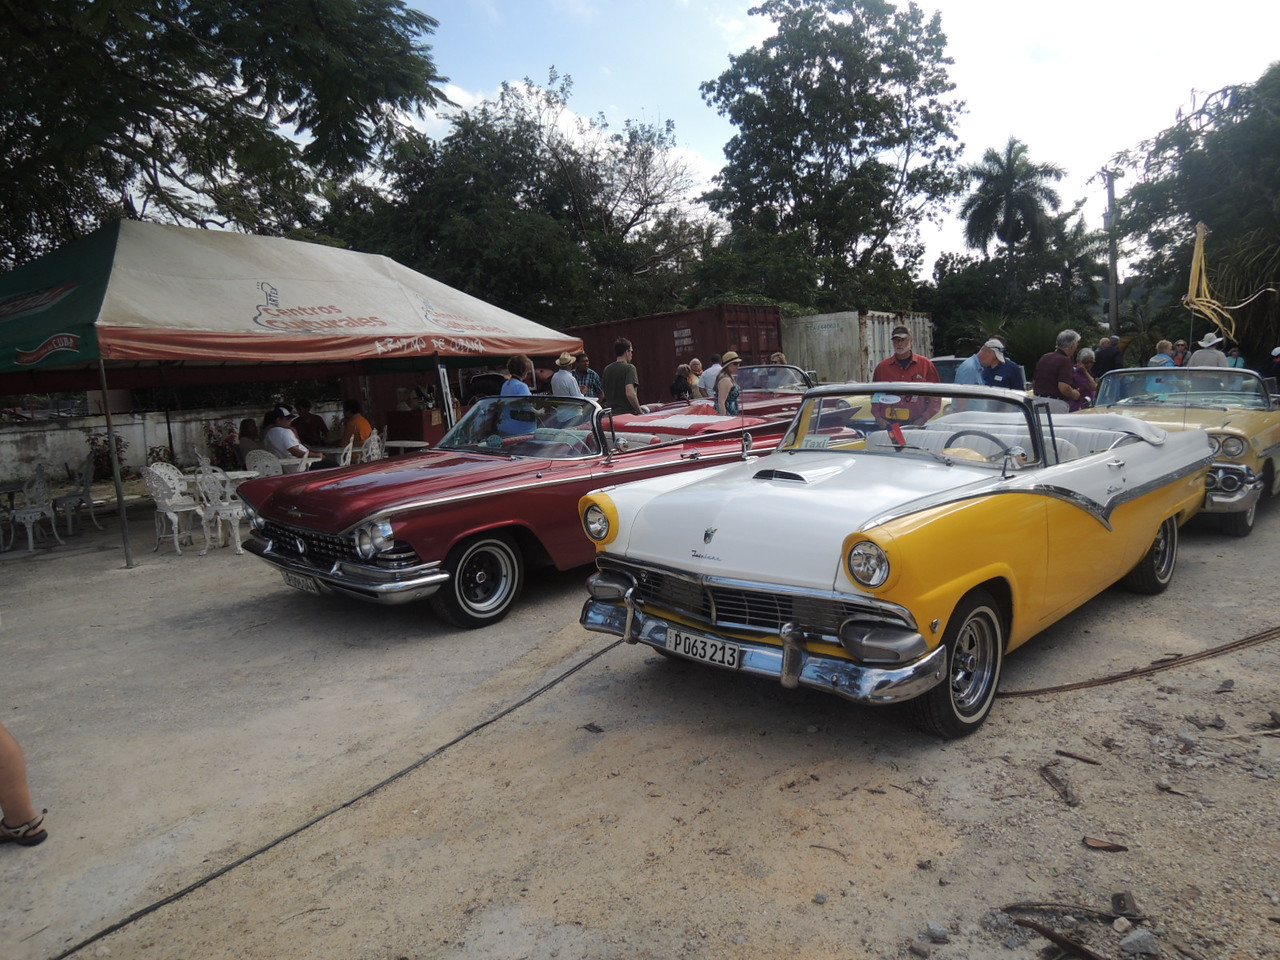 It was like a car show a the farm.  I later rode in the burgandy Buick.